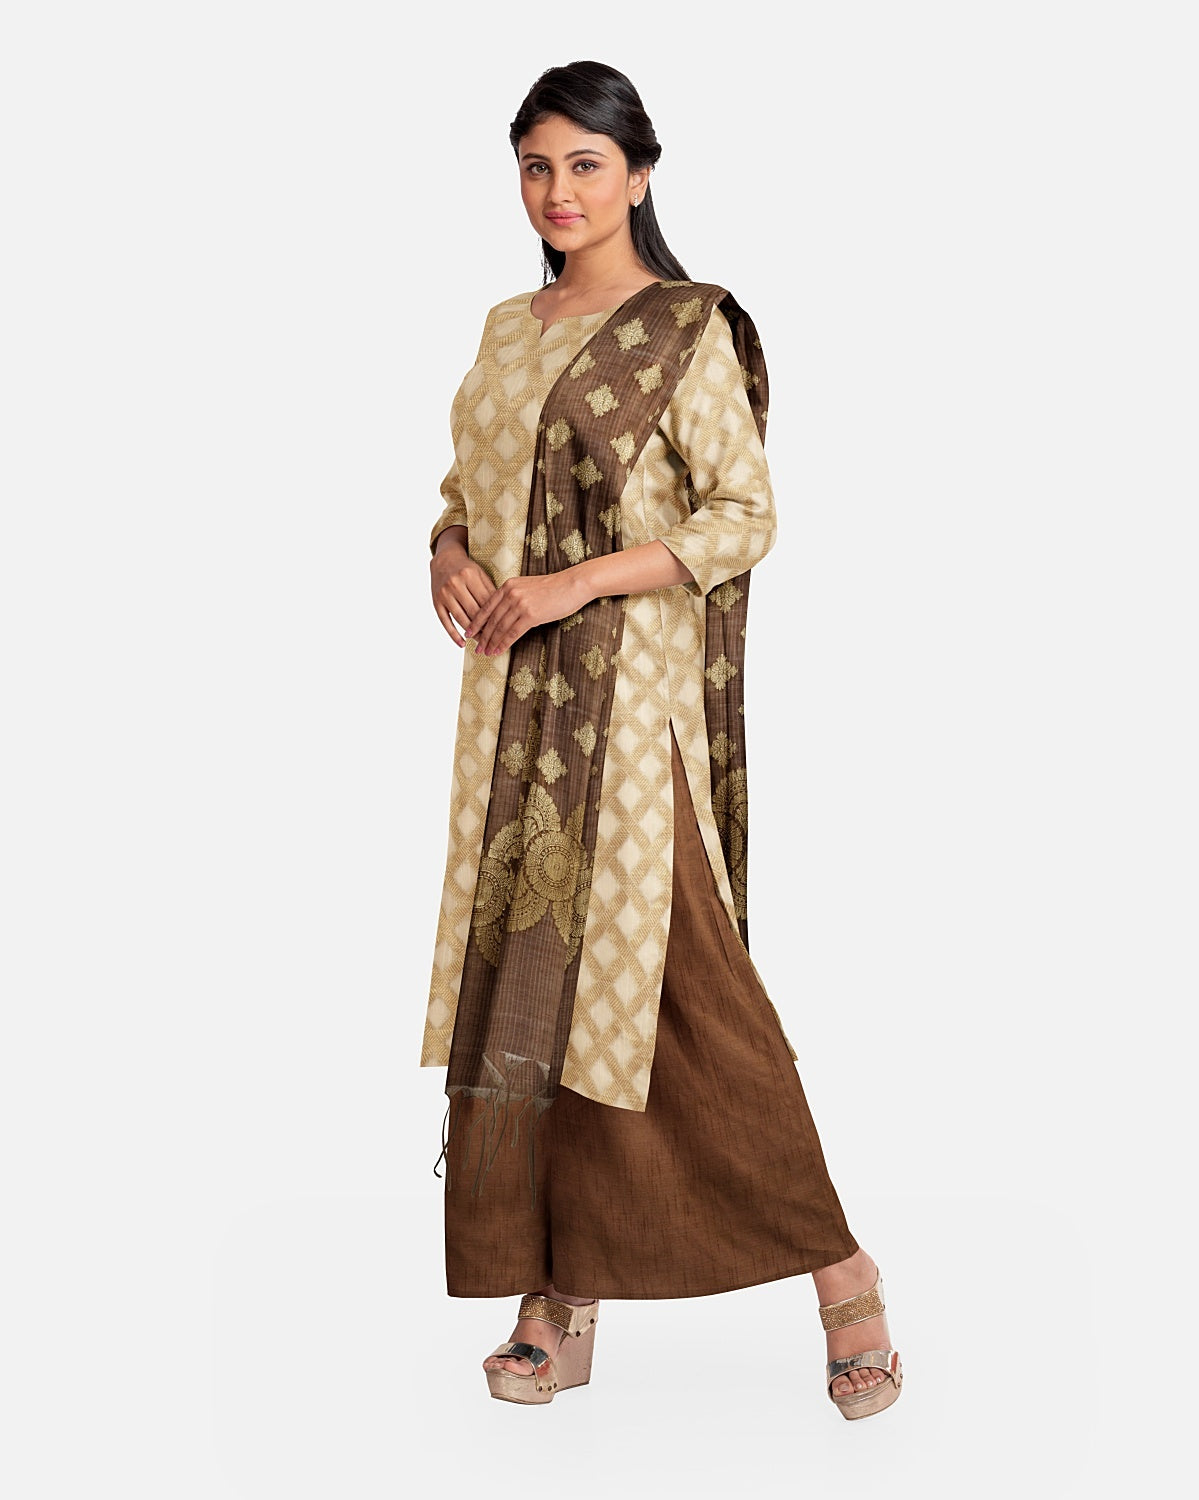 Chestnut Brown  & Gold Cotton Suit Fabric Set